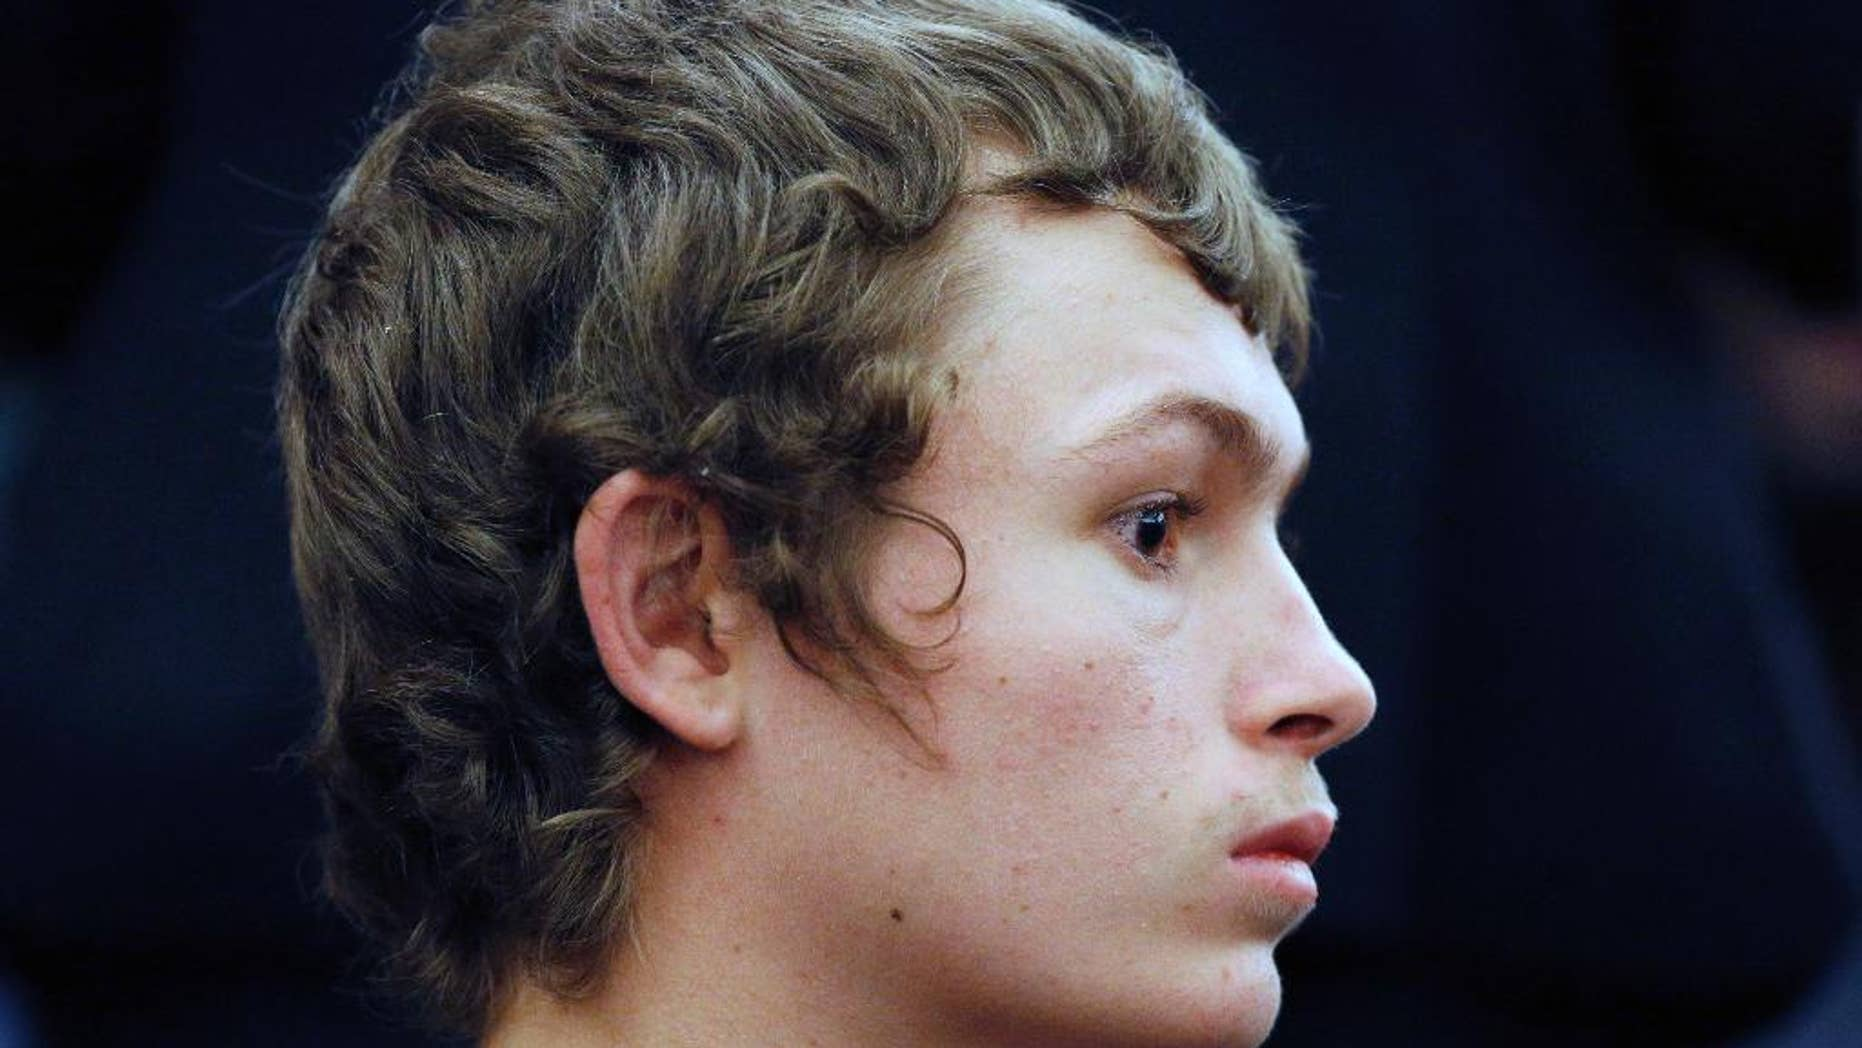 FILE - In a March 31, 2015 file photo, Erich Milton Nowsch Jr., 19, appears in court in Las Vegas. Nowsch, accused of fatally shooting Las Vegas neighborhood mother Tammy Meyers, says he mistook her for drug thugs who had threatened him and his family, according to a taped interview with Las Vegas police that defense attorneys now want tossed out of the puzzling murder case initially thought to be a road rage killing. (AP Photo/John Locher, File)